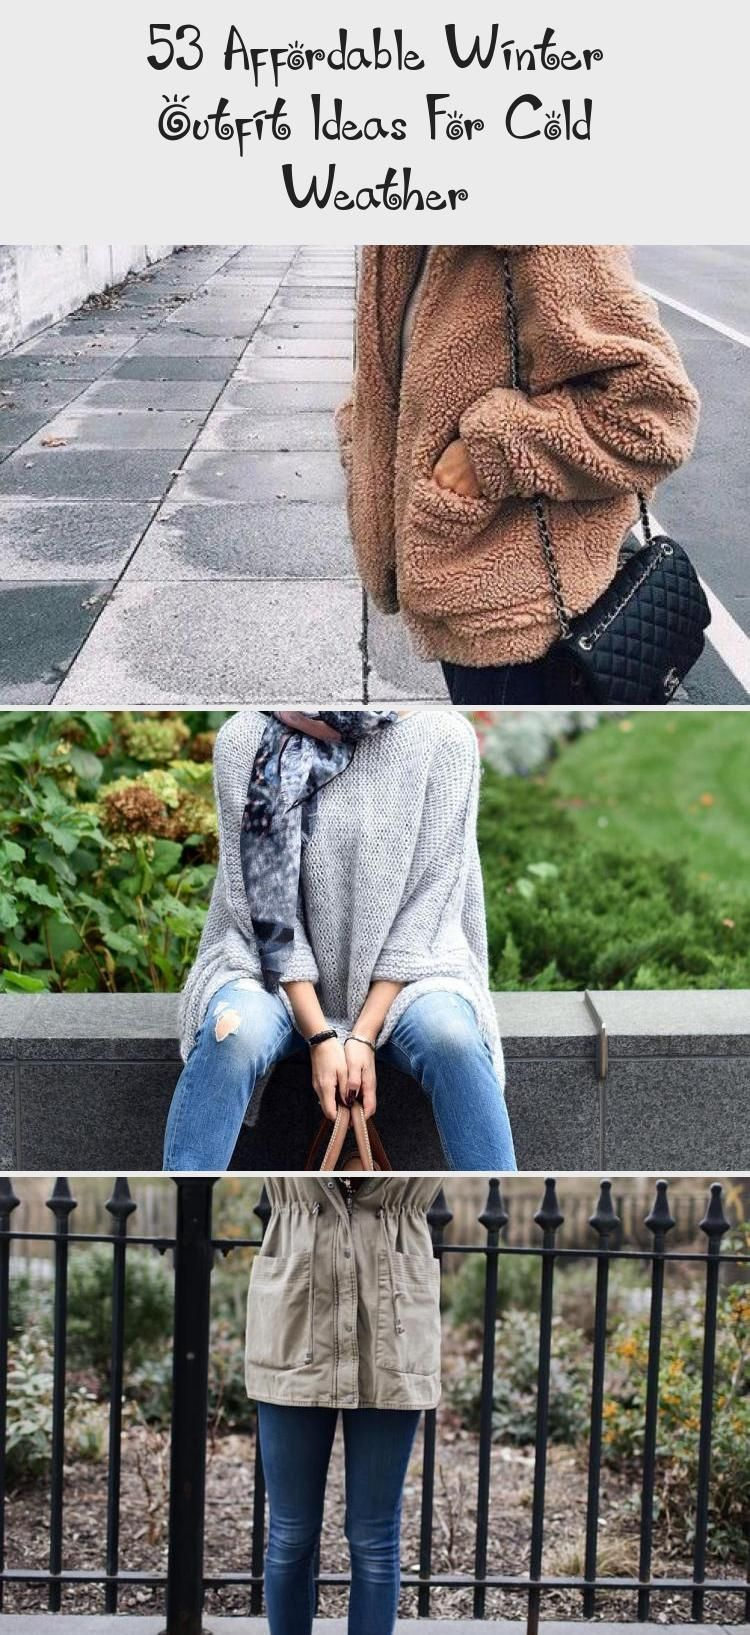 53 Affordable Winter Outfit Ideas For Cold Weather # ...